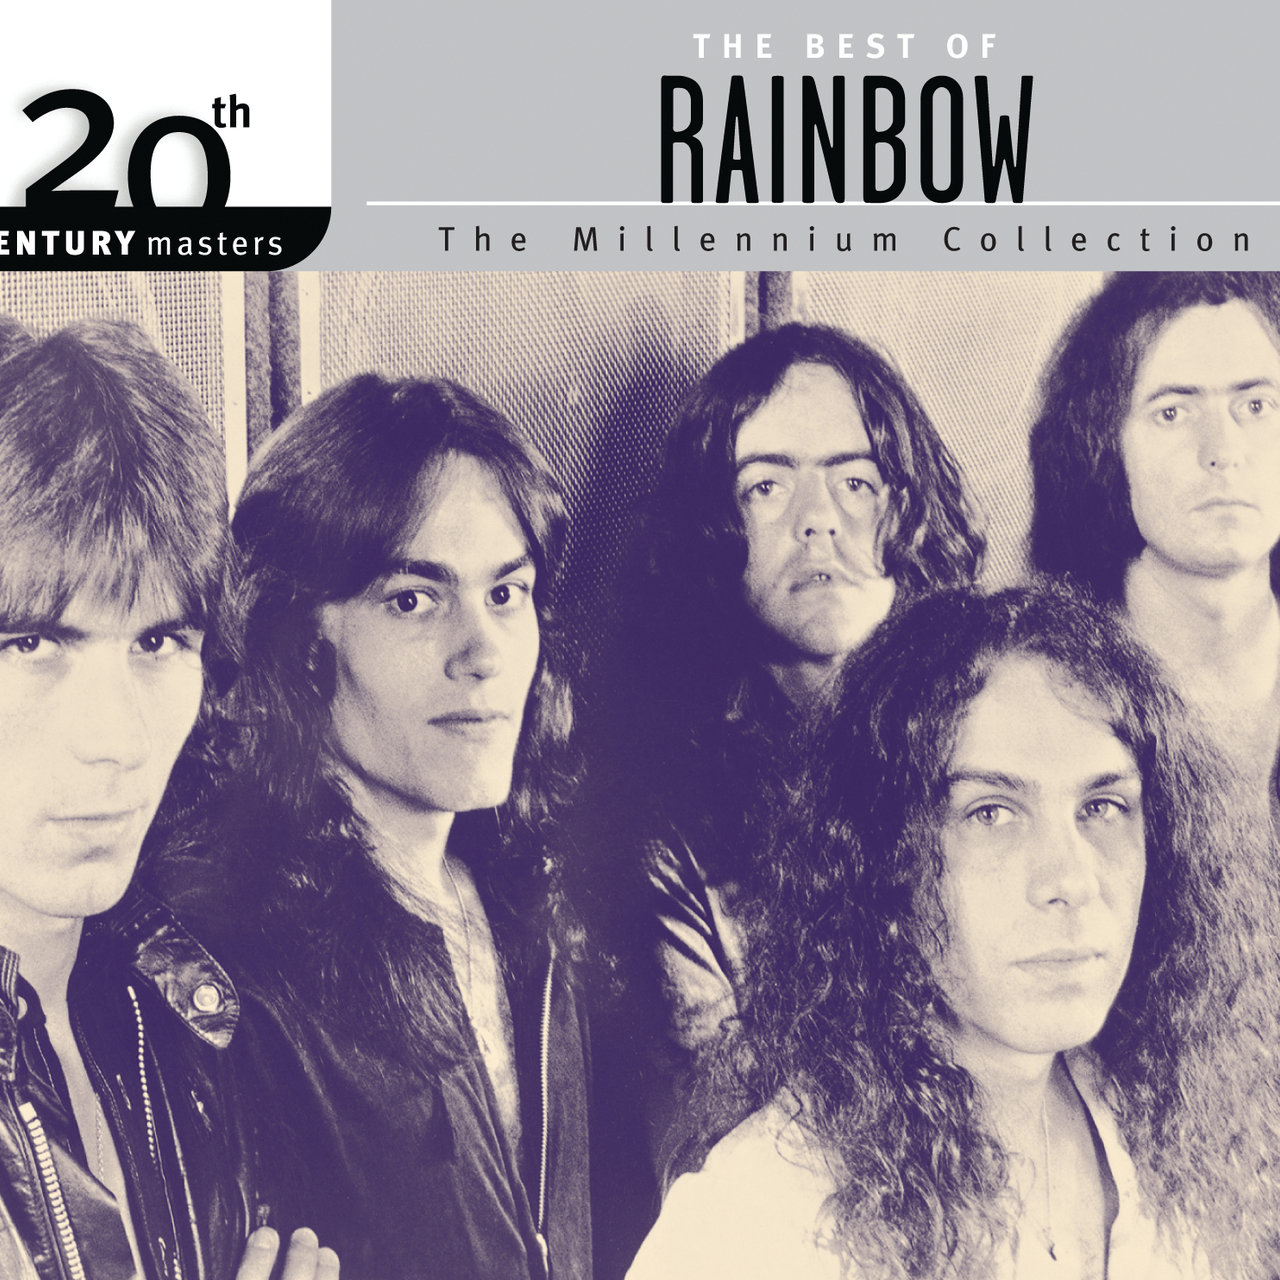 The Best Of Rainbow 20th Century Masters The Millennium Collection